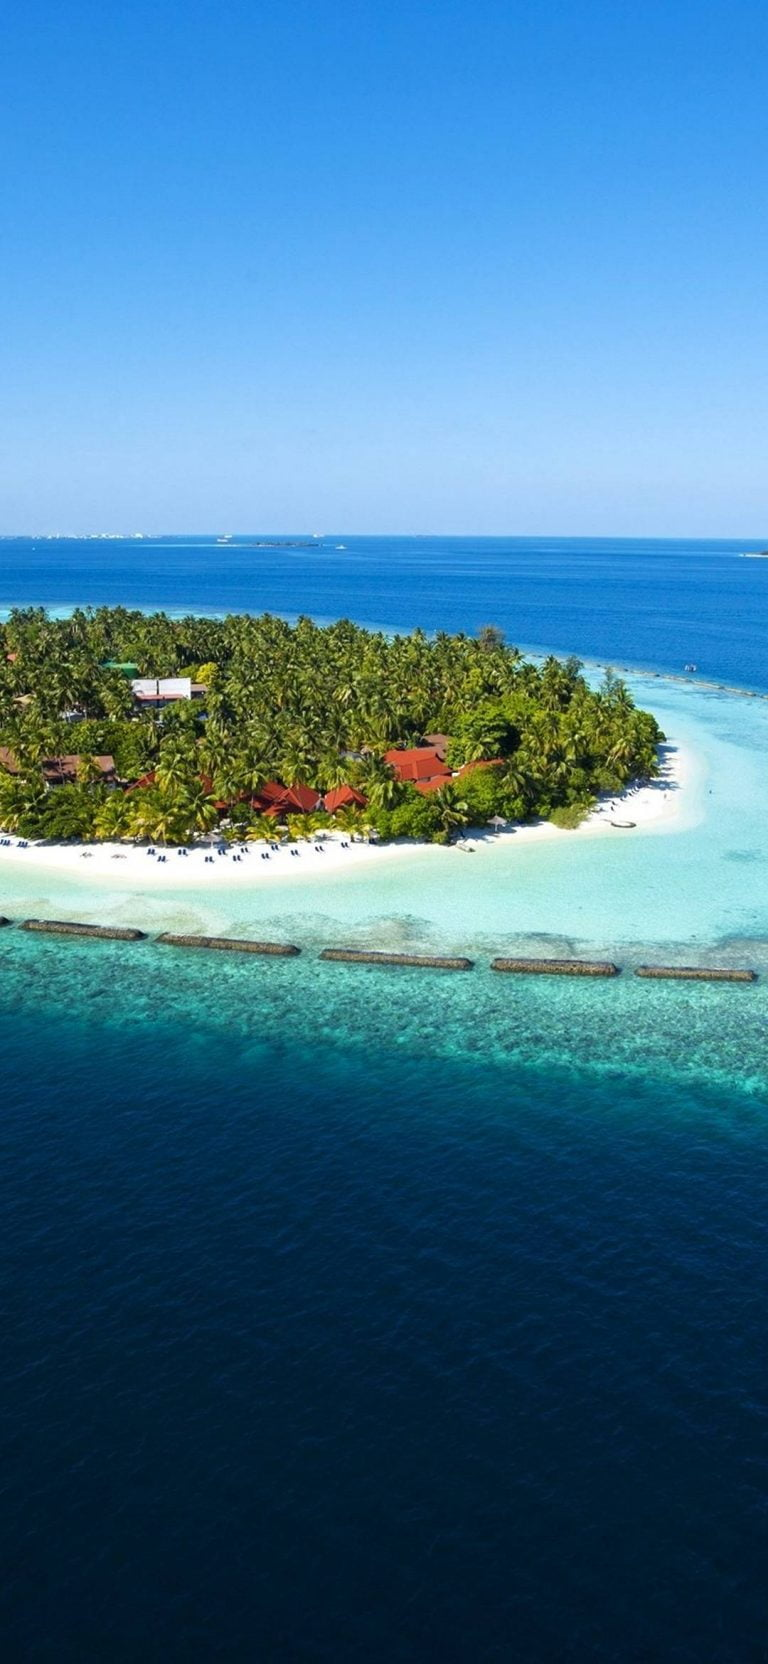 Amazing-Maldives-Island-View-1080x2340-768x1664 - 50+ Free Xiaomi Mi CC9 Phone Wallpapers [year]